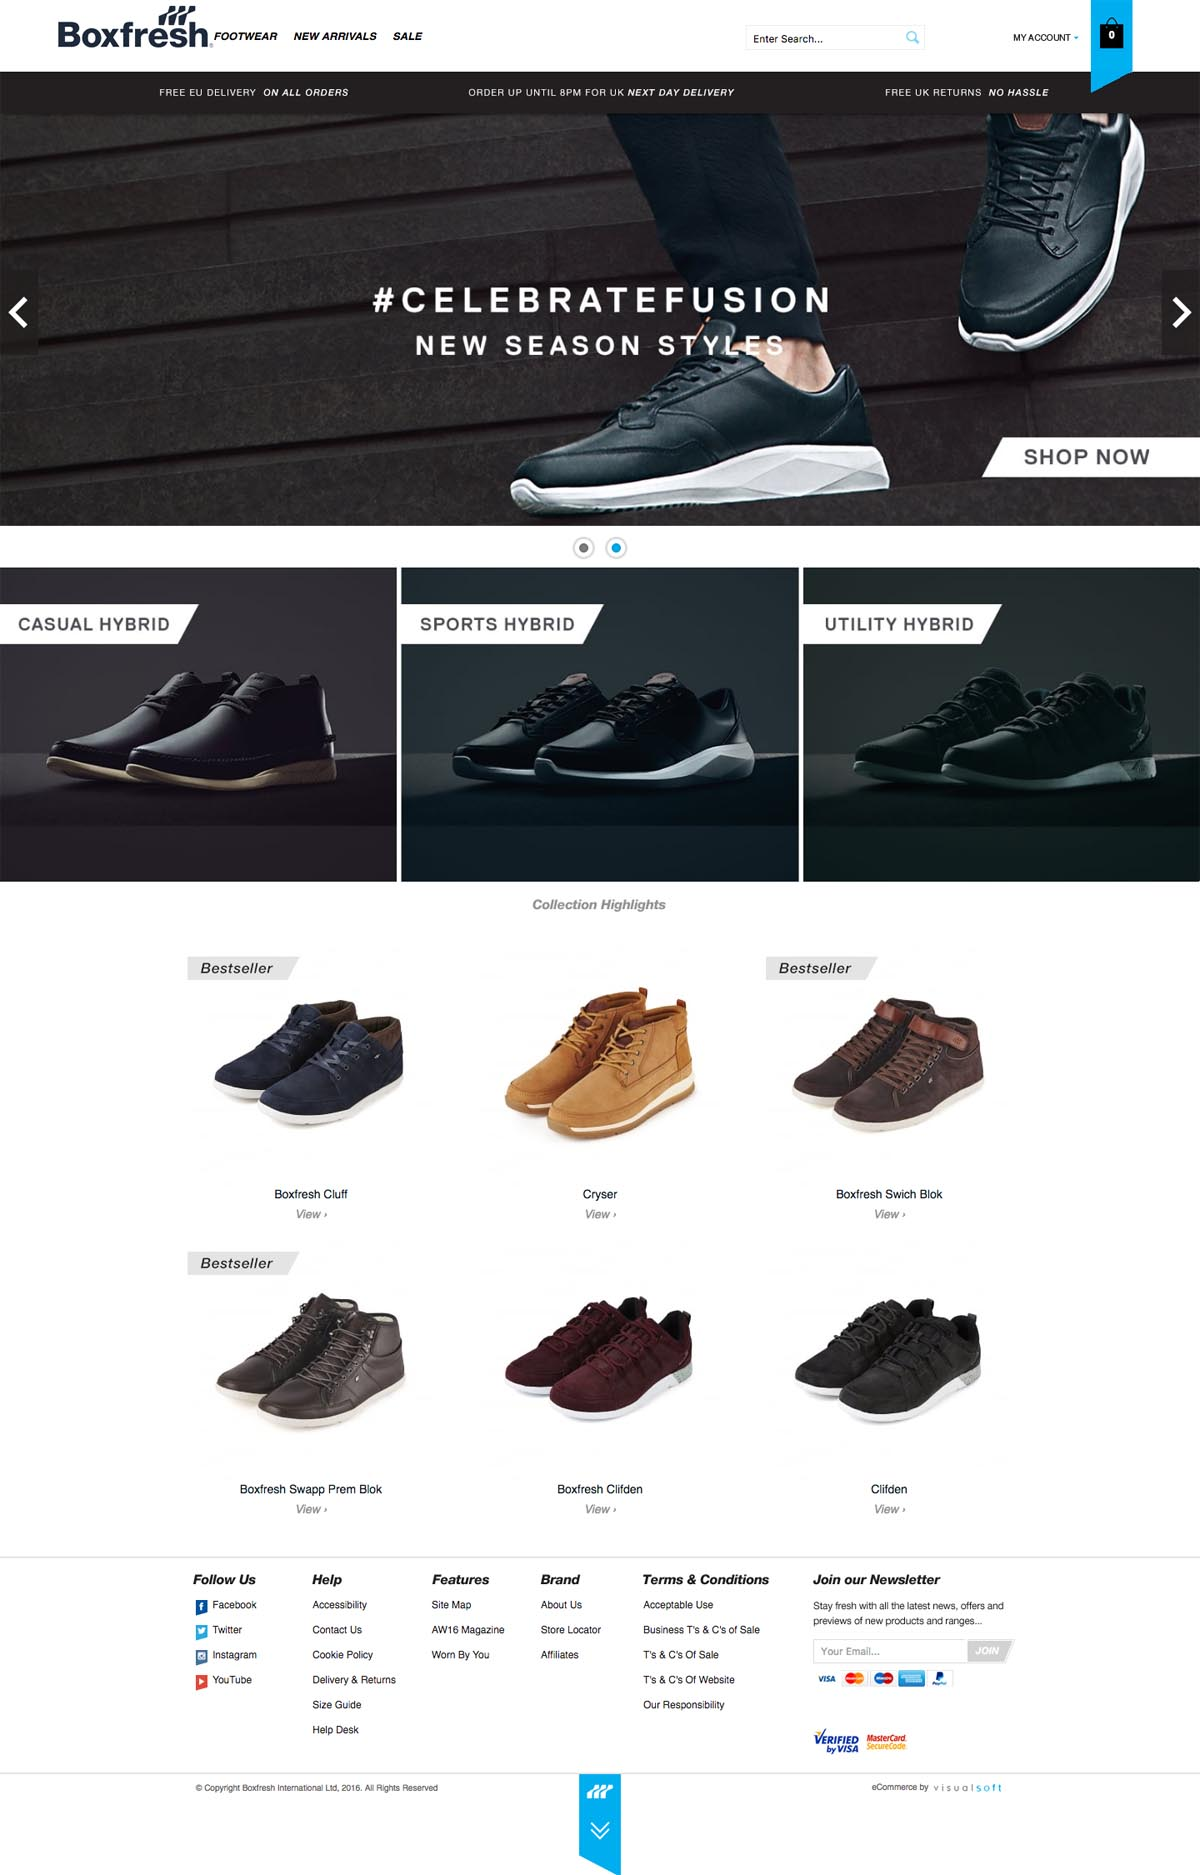 eCommerce website: Boxfresh